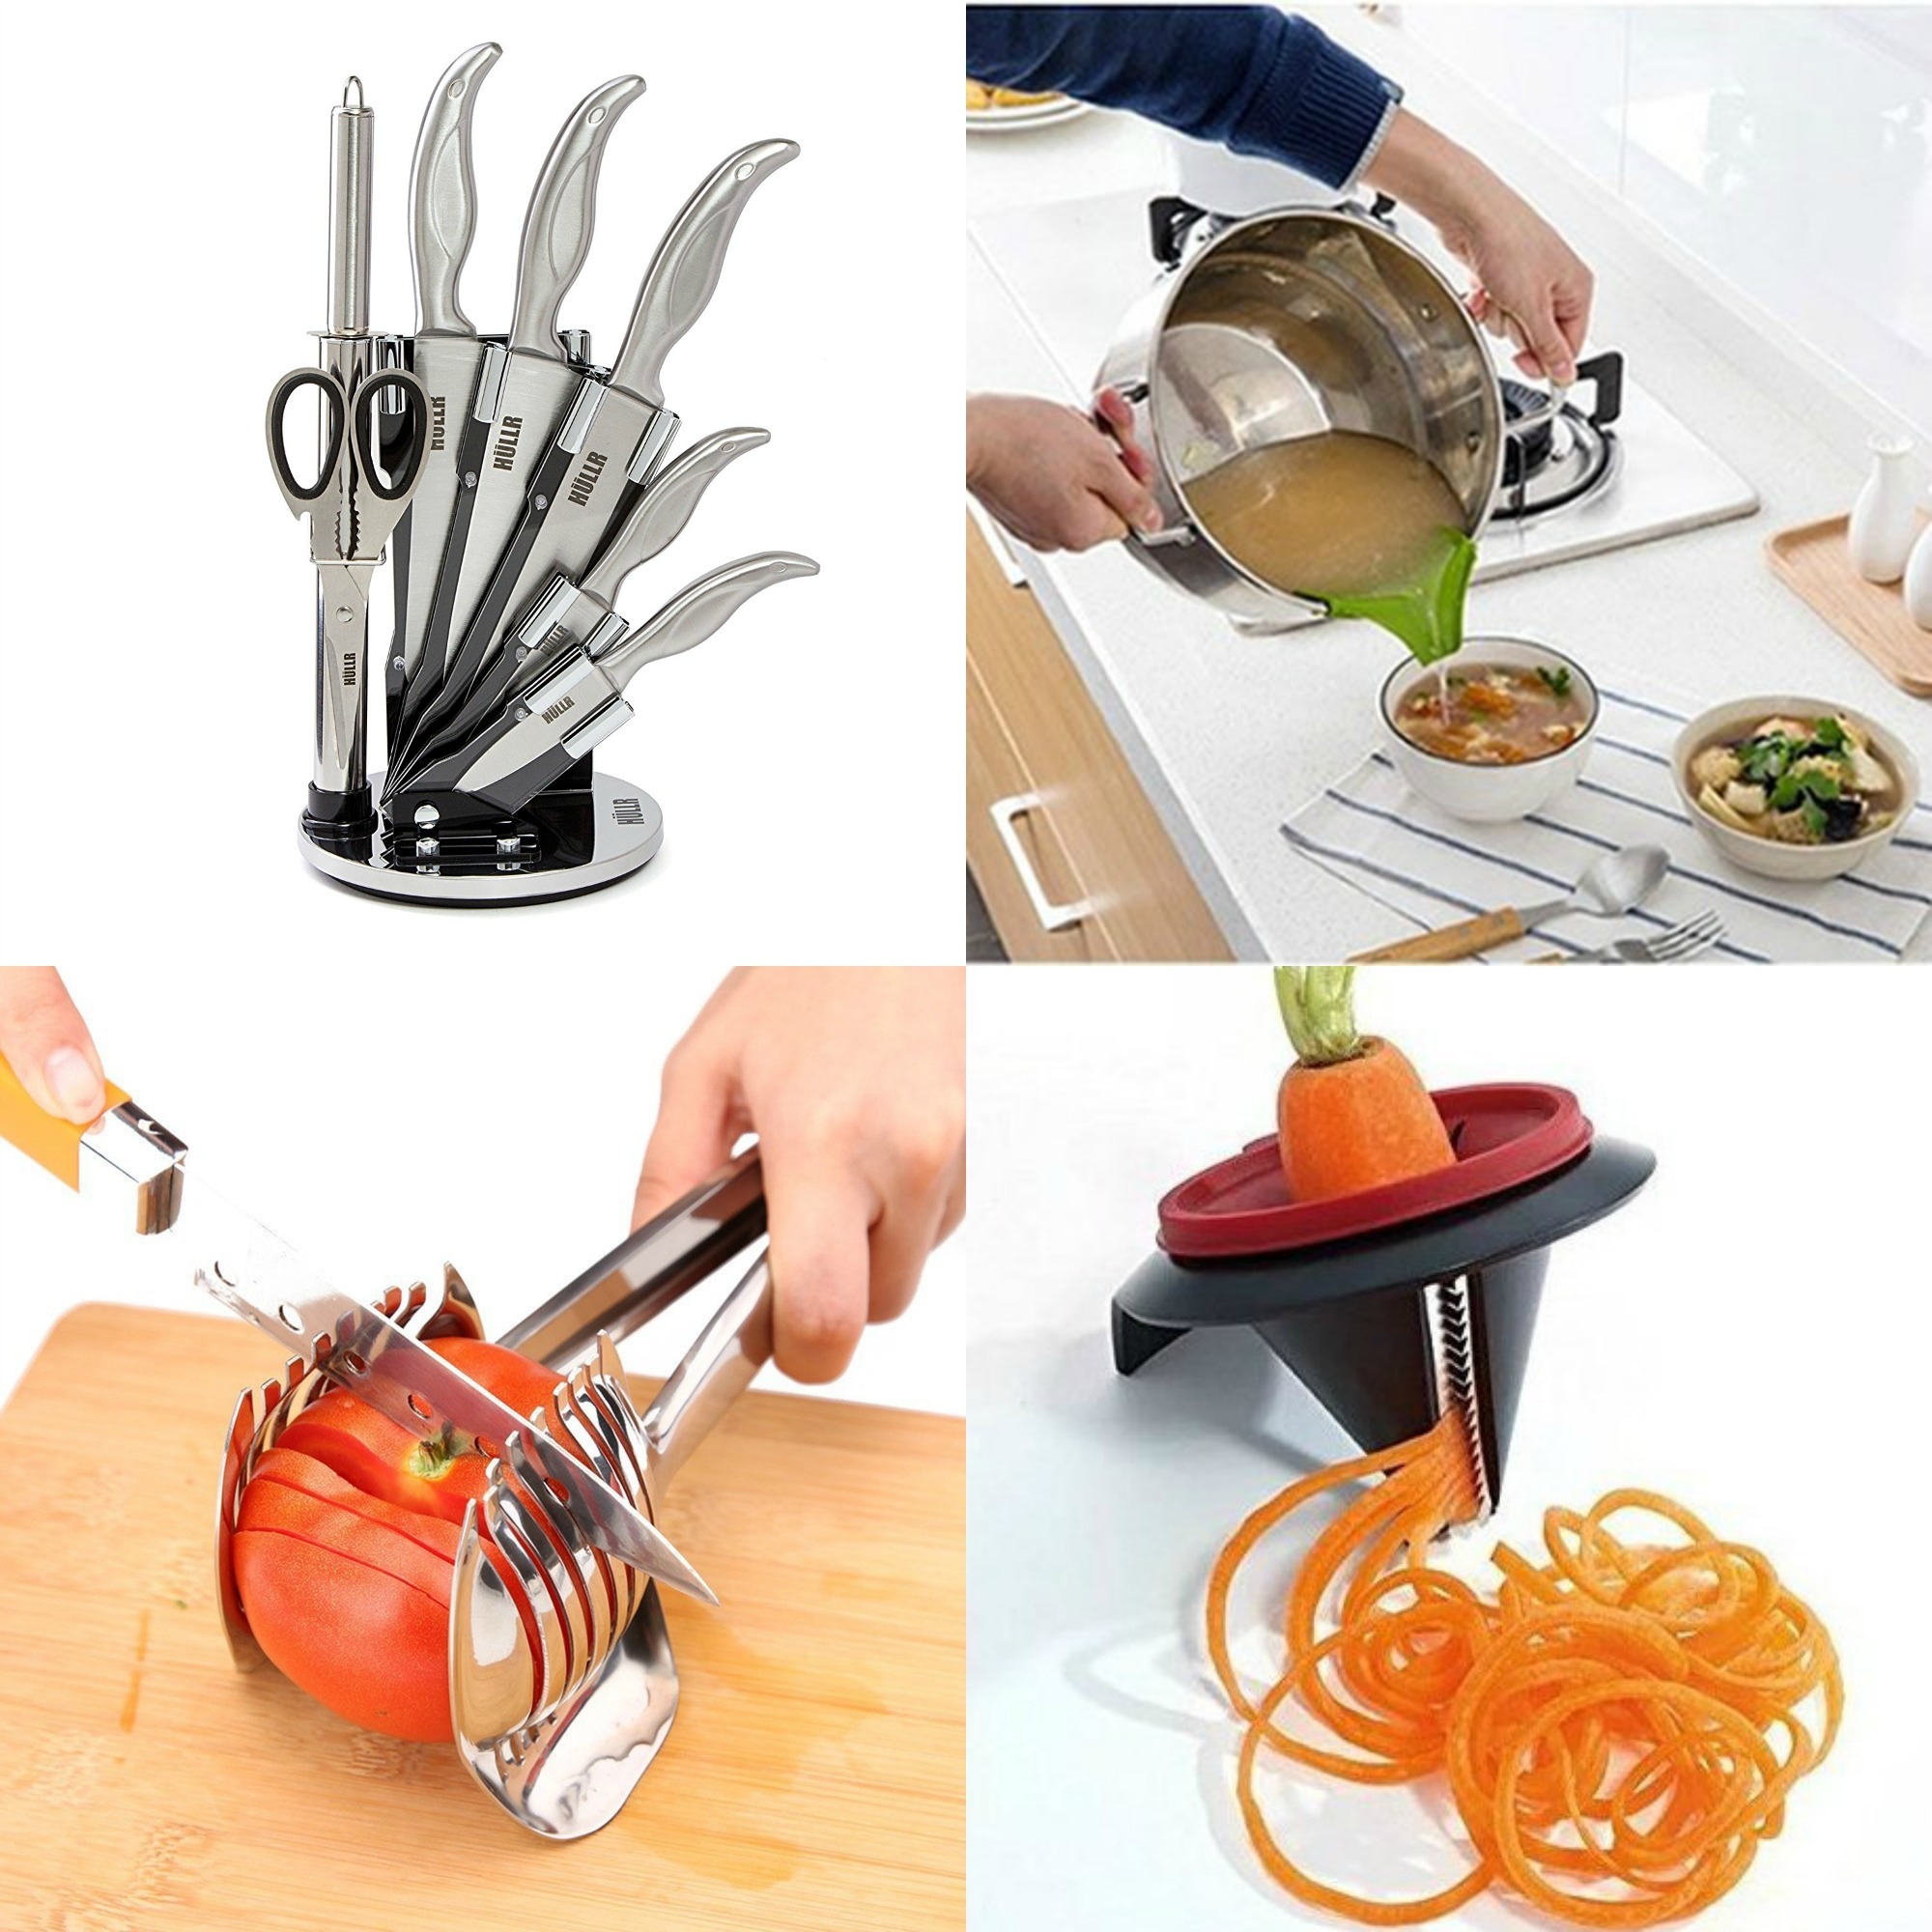 12 amazing kitchen gadgets to make your life easier